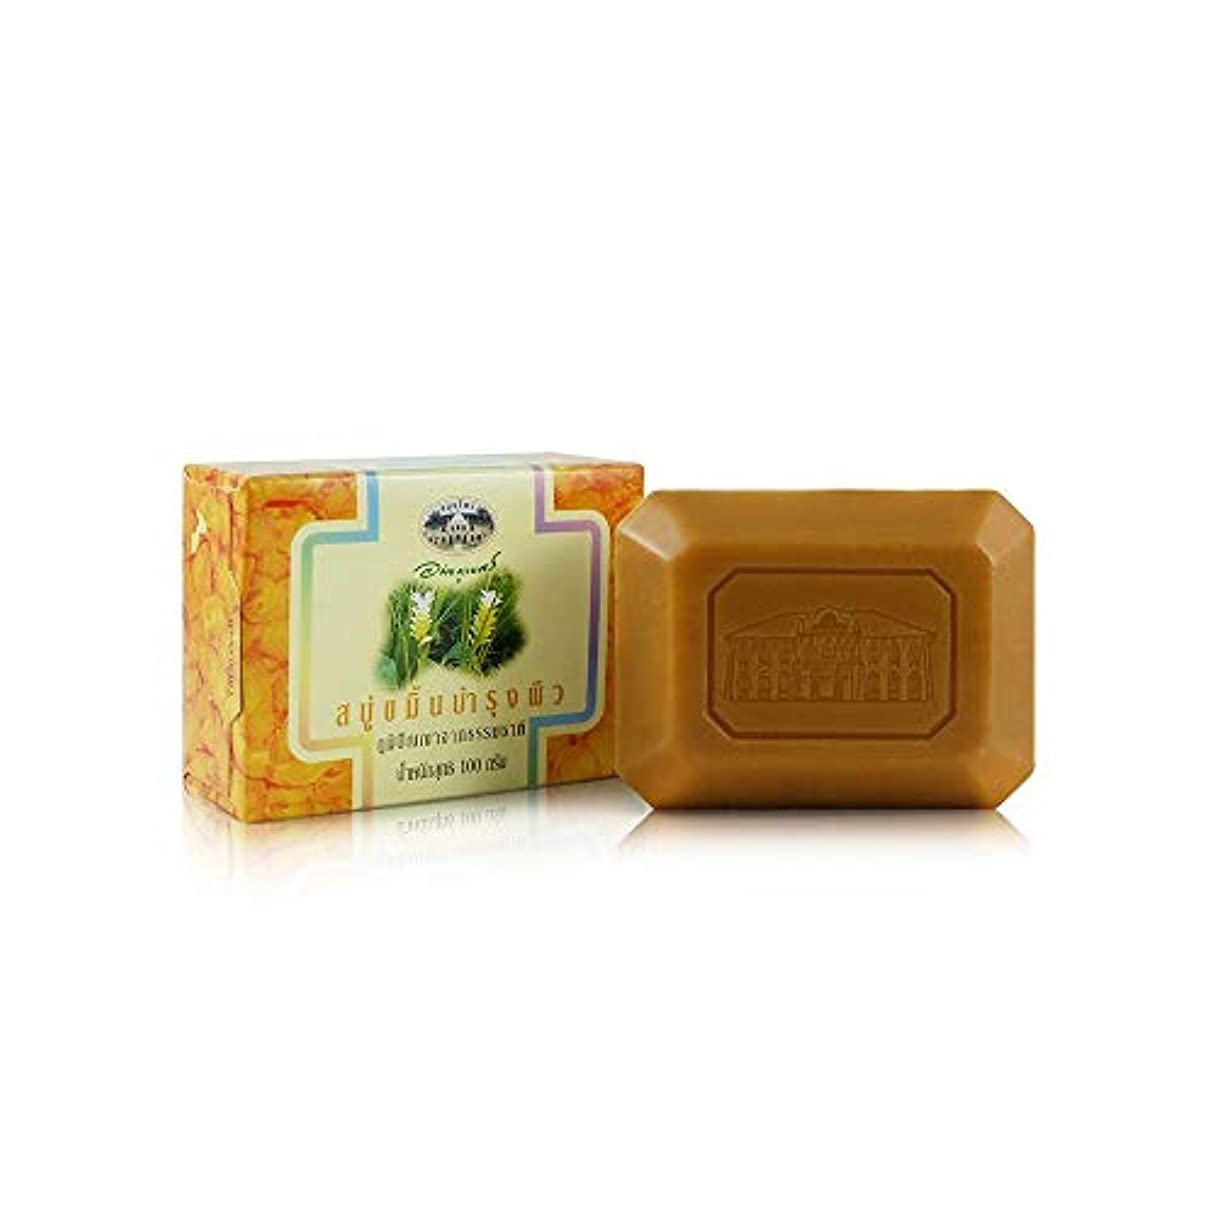 政令公爵夫人顎Abhaibhubejhr Turmeric Herbal Body Cleansing Soap 100g. Abhaibhubejhrターメリックハーブボディクレンジングソープ100グラム。